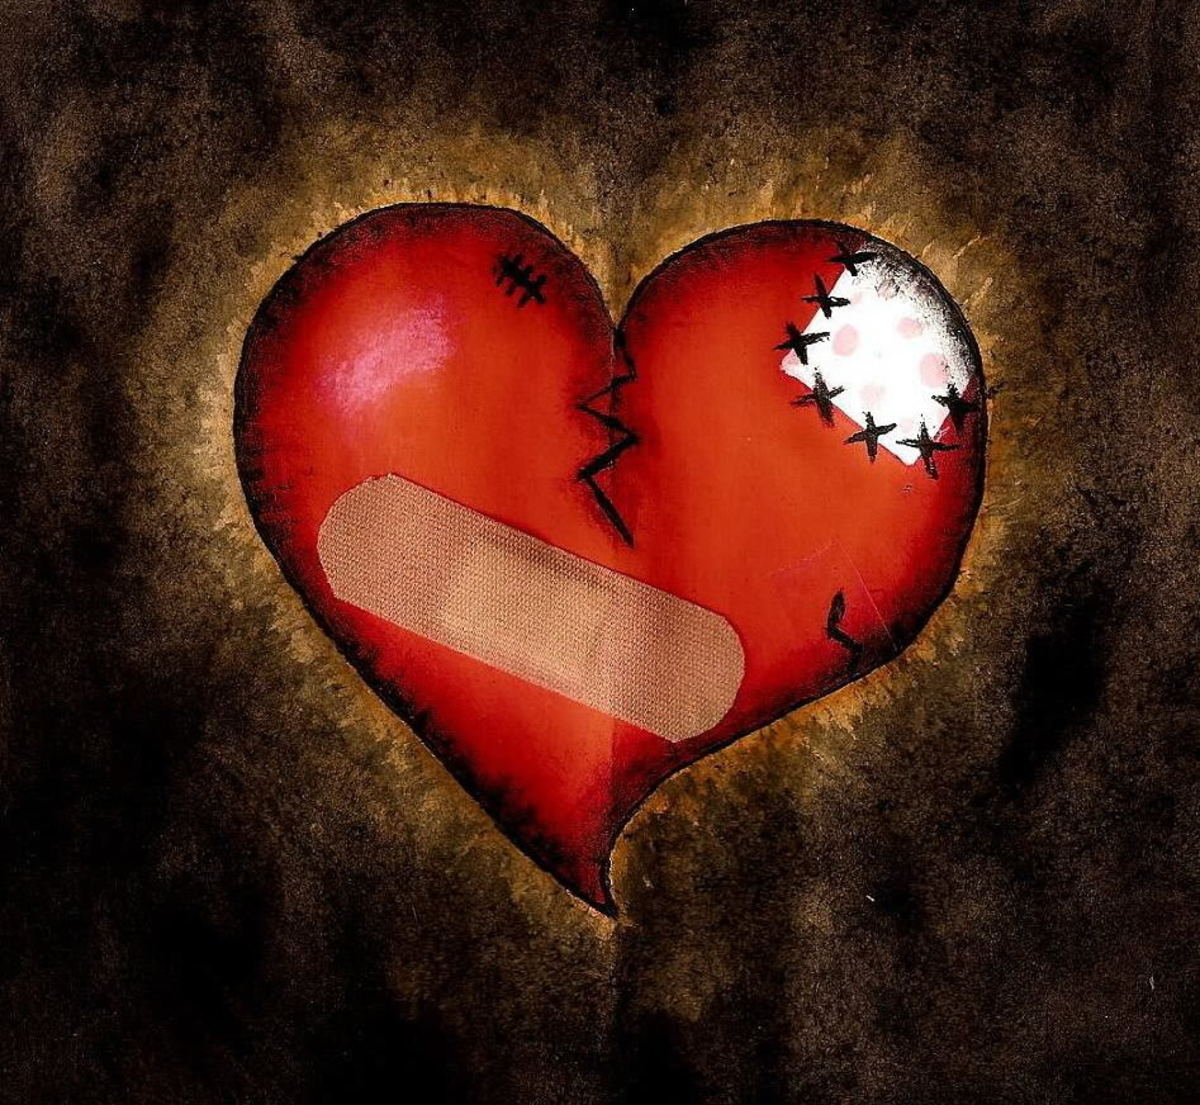 If only a Band-Aid would mend your heart. source forgiveness.com